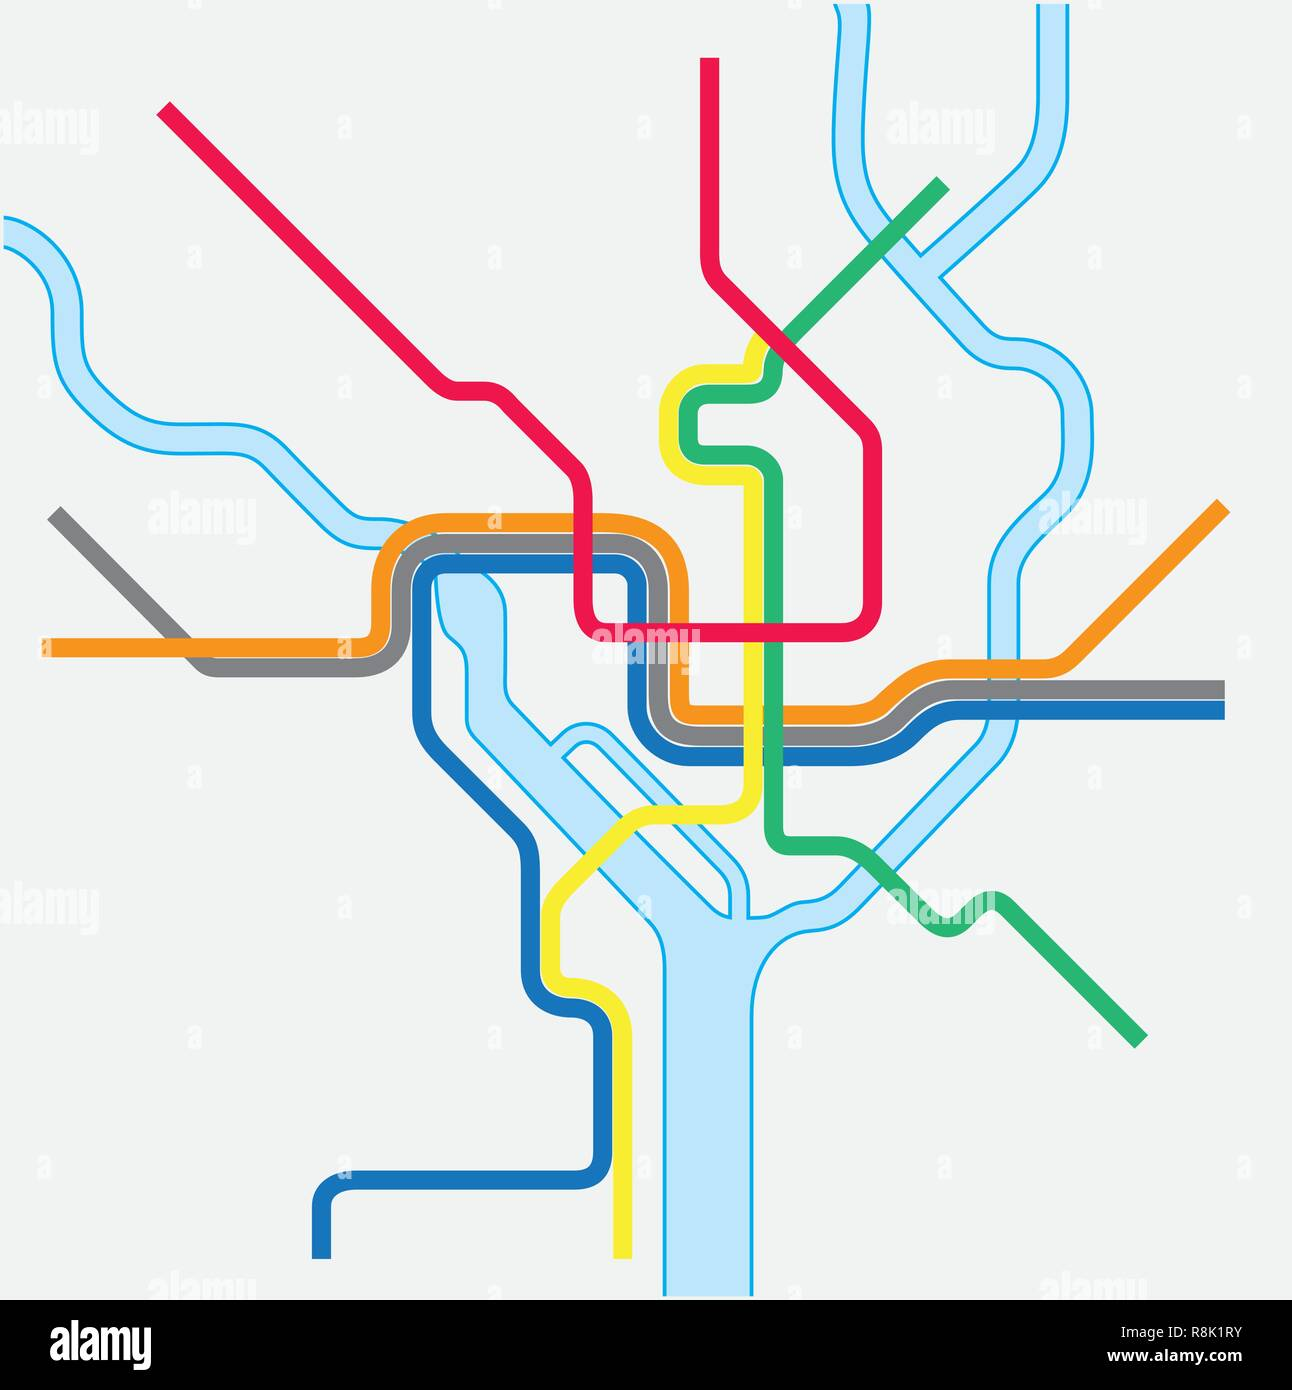 Metro map of Washington DC, United states Stock Vector Art ... on dc city map, dc train map, dc neighborhood map, wa dc map, dc on a map, dc airports map, dc walking map, dc location on map, dc tourist map, dc tour map, dc museums map, dc transit map, dc state map, dc county map, dc capital map, dc crime map, dc attractions map, virginia map, dc road map, dc street maps,